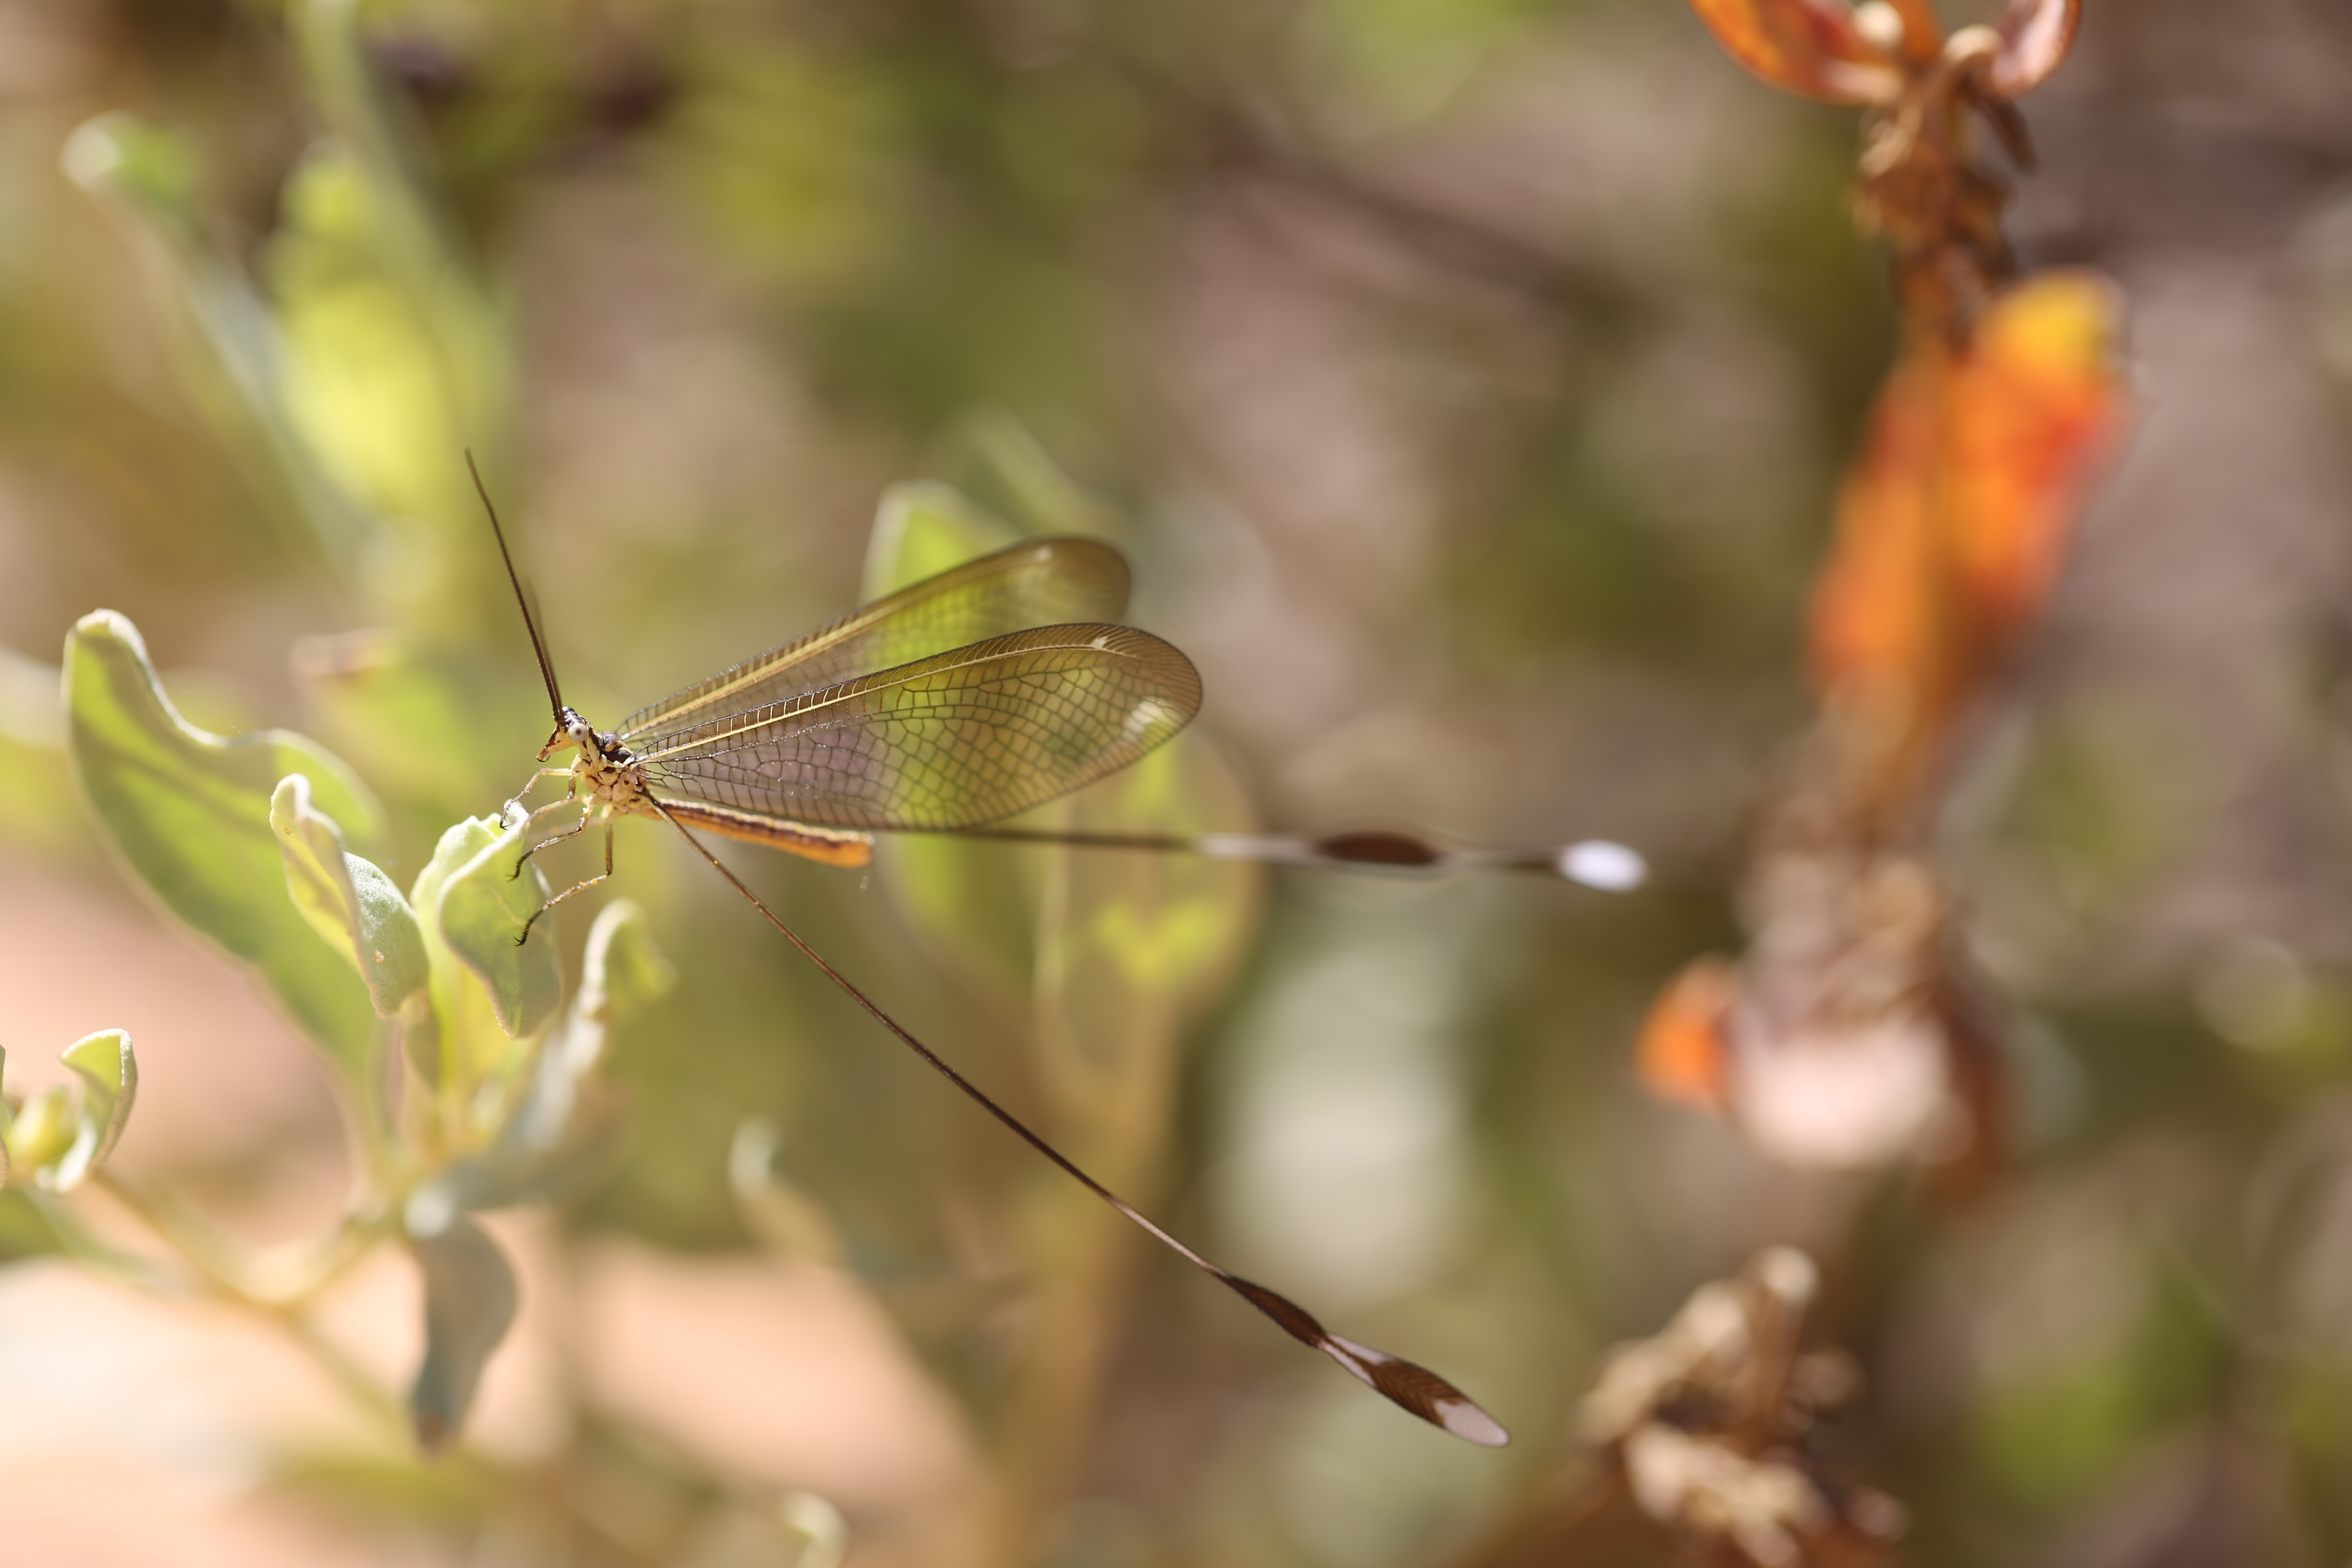 Spoon-winged lacewing